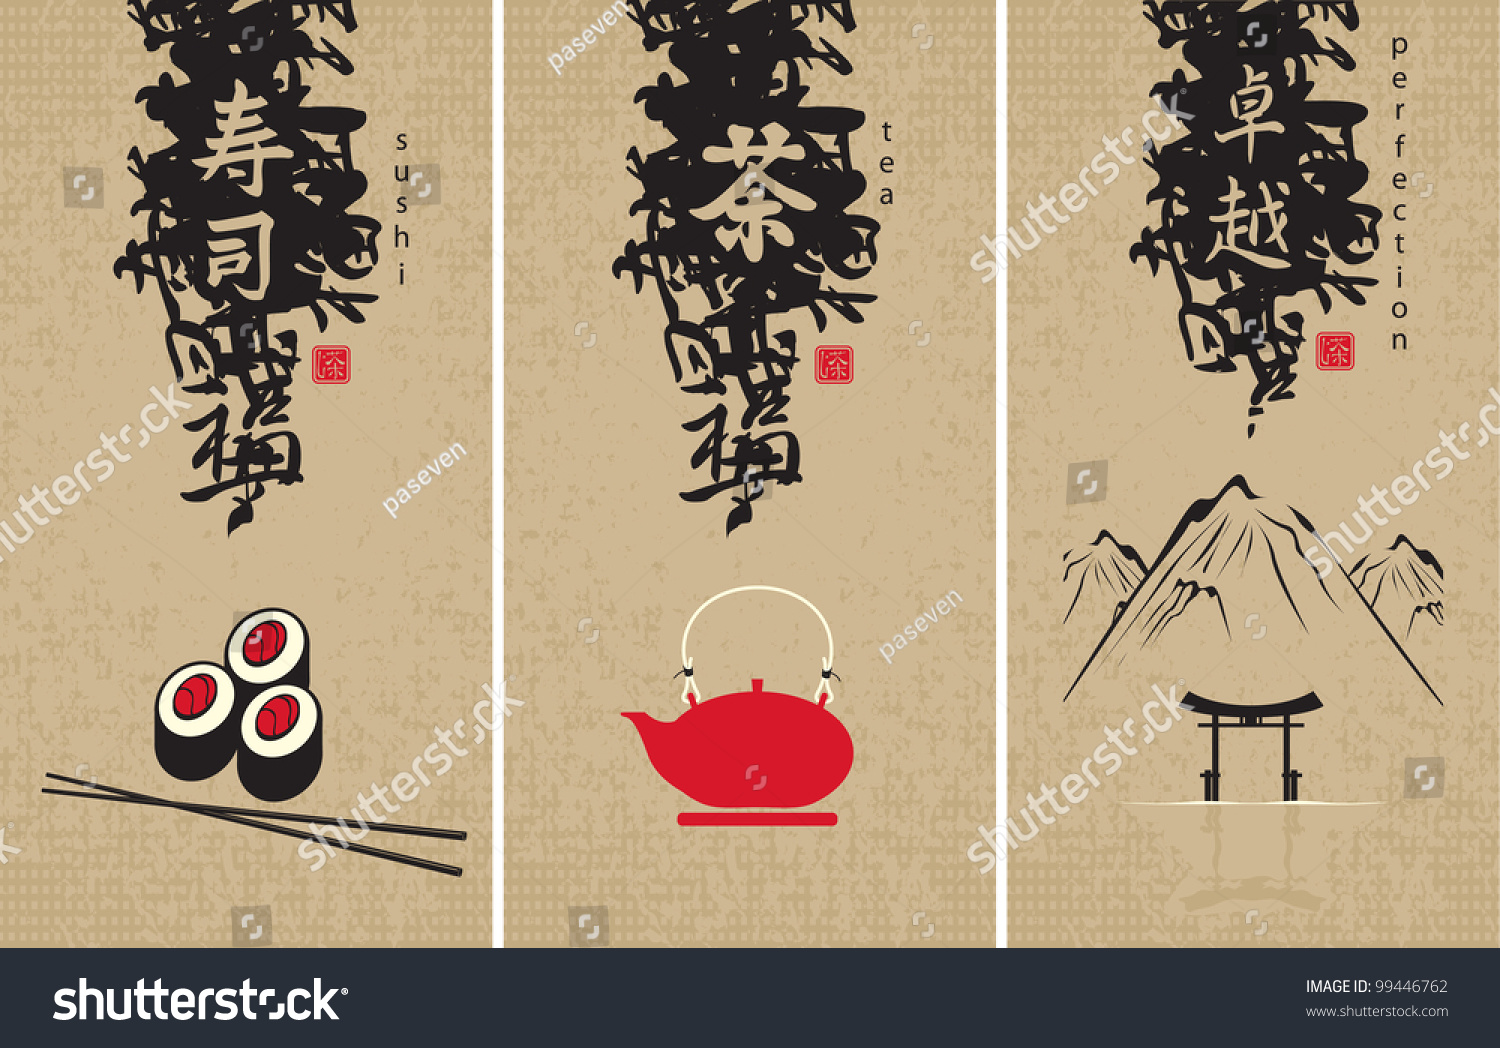 Three menu japanese cuisine stock vector 99446762 for Akina japanese cuisine menu